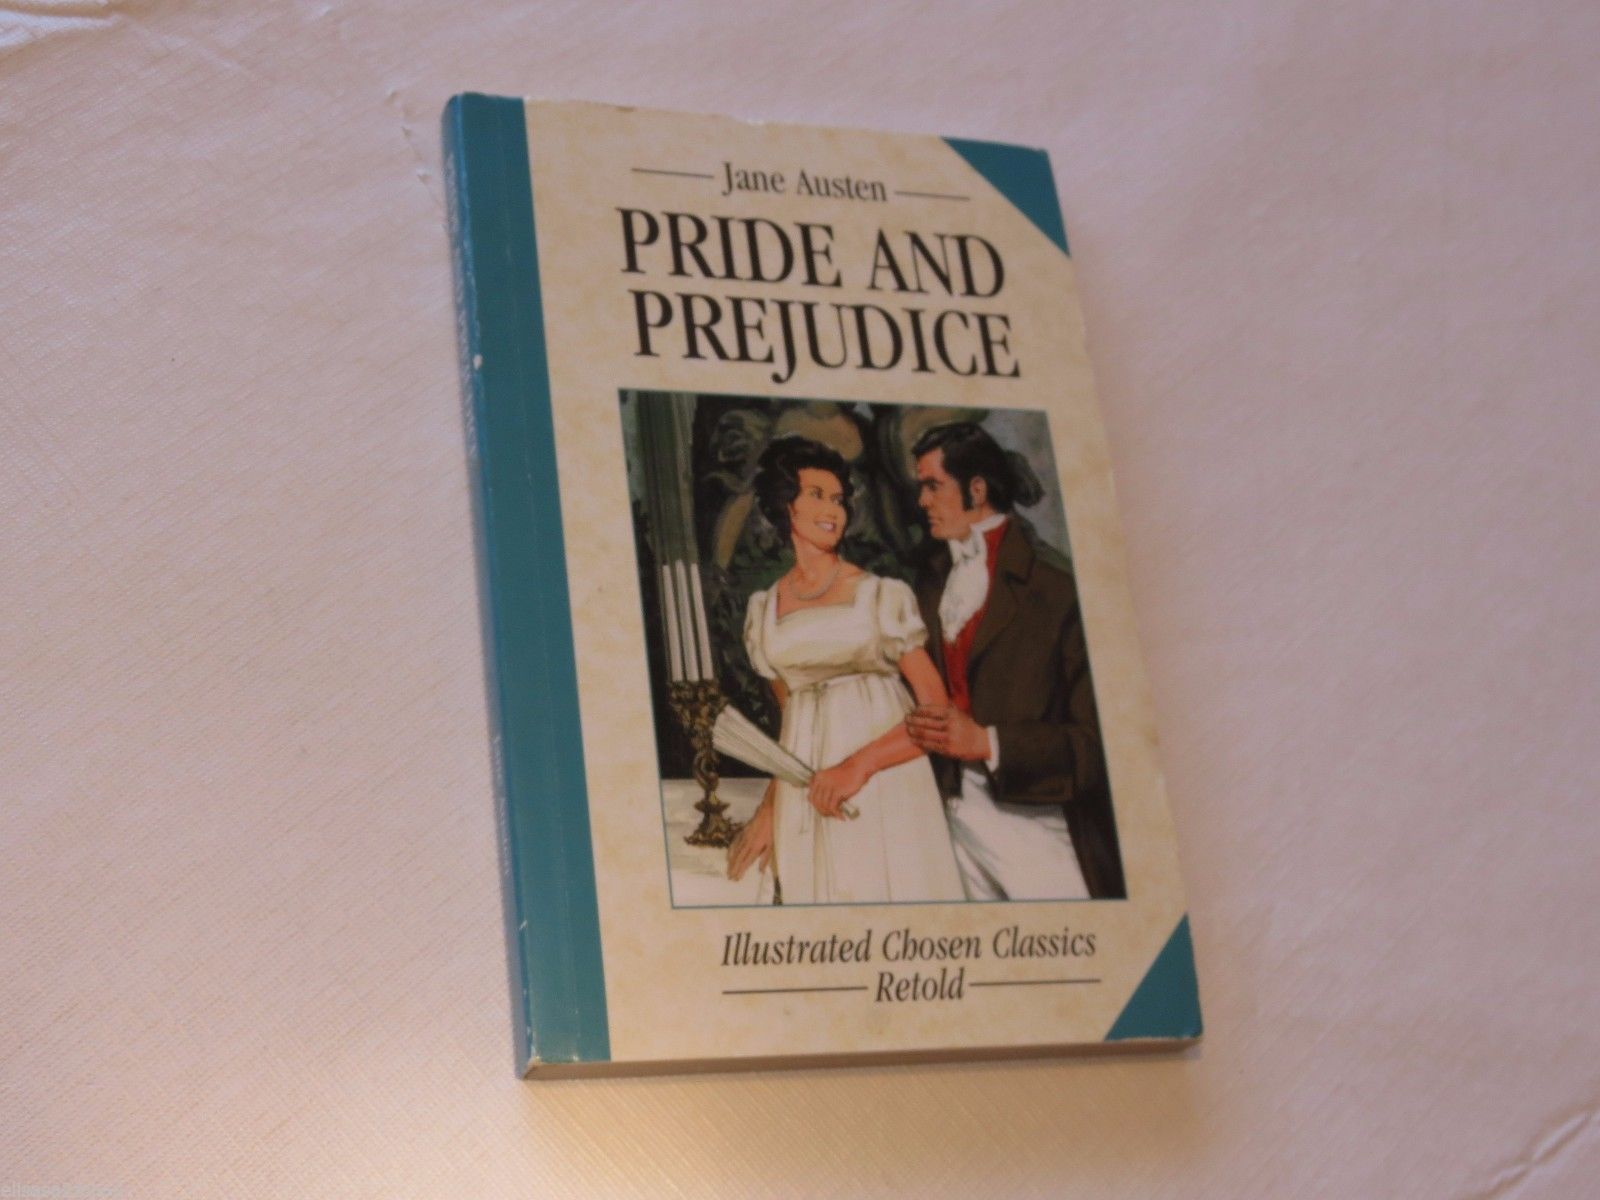 pride prejudice jane austen Jane bingley (née bennet) is a main character in jane austen's pride and prejudice she is the eldest daughter of mr and mrs bennet of longbourn in hertfordshire she is the wife of charles bingley and sister of elizabeth , mary , kitty , and lydia.